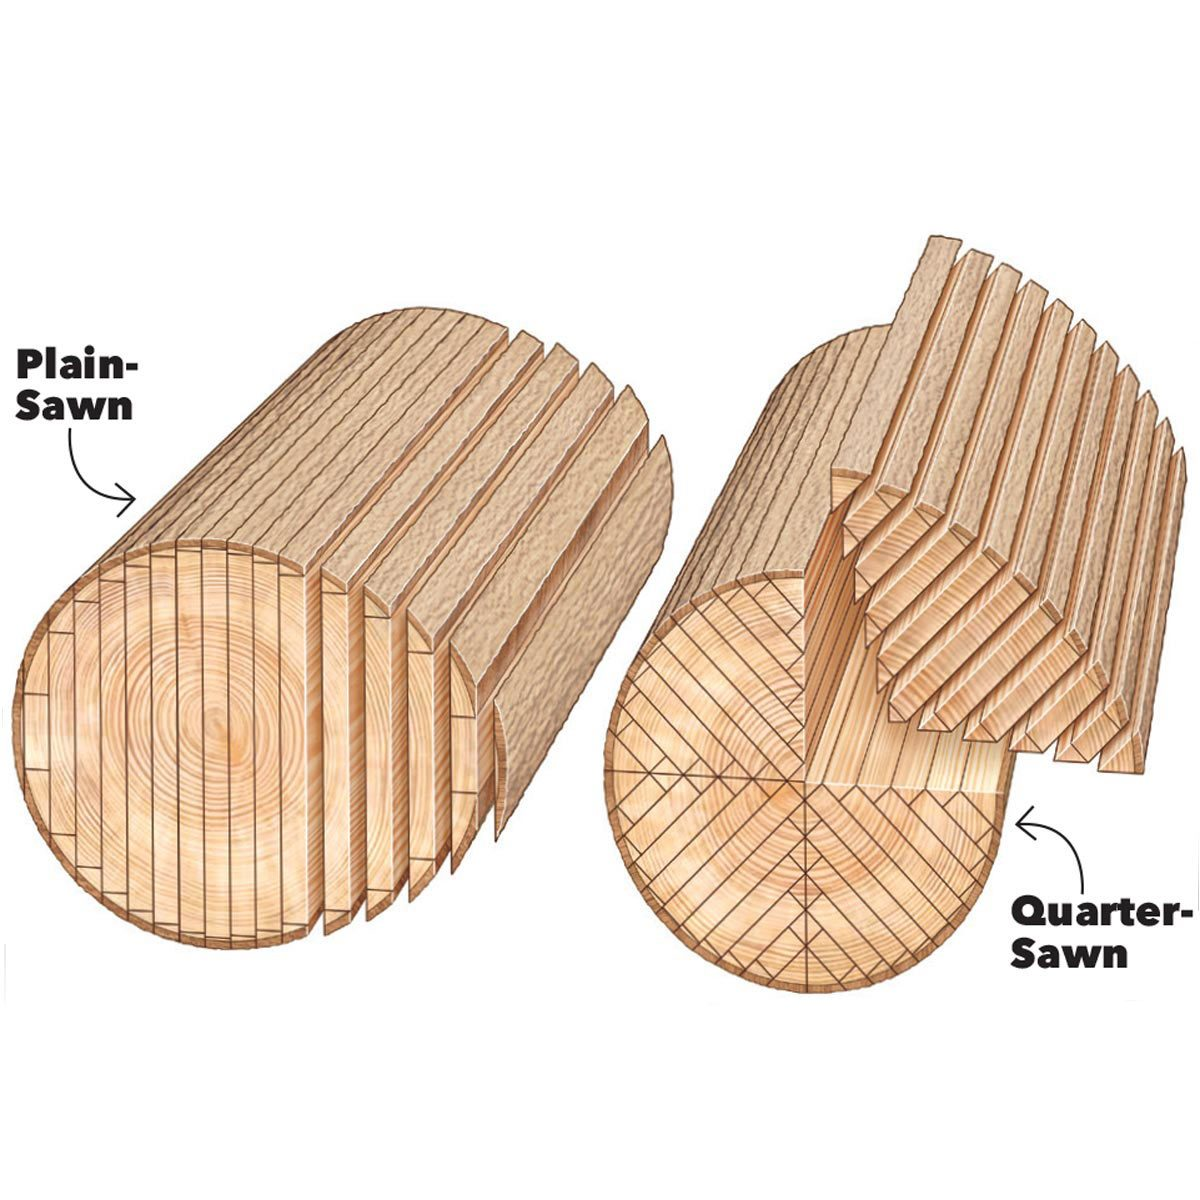 Plain- vs. Quarter-Sawn